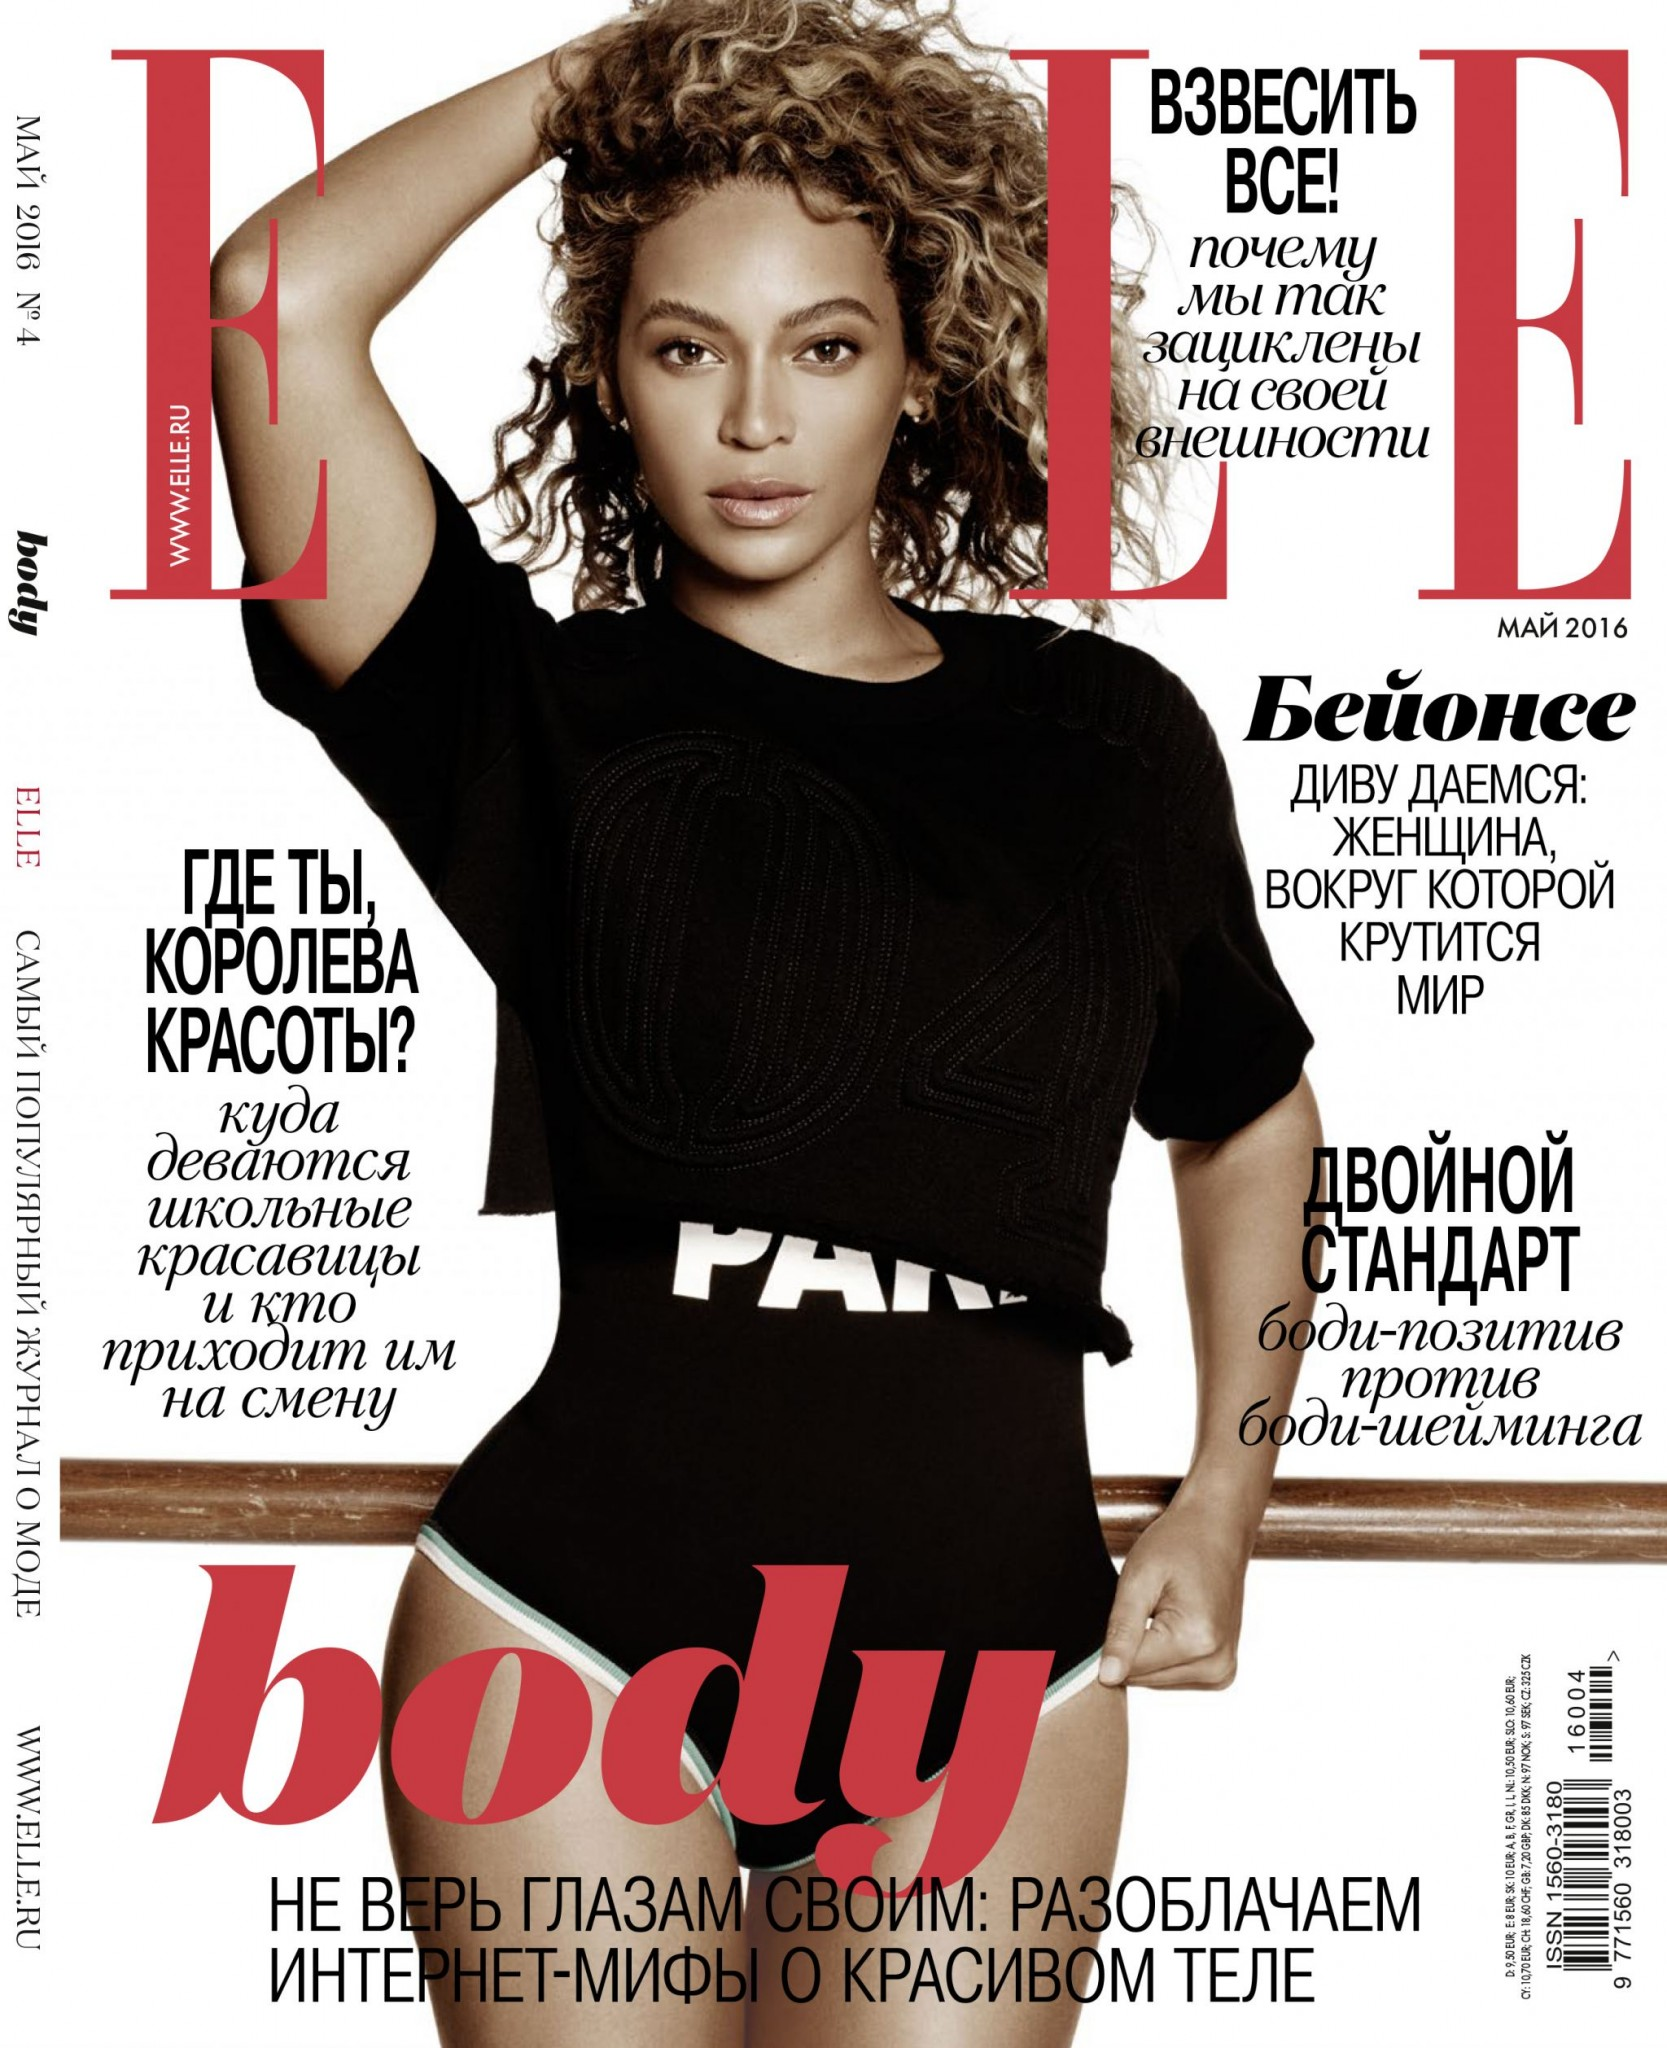 beyonce-cover-elle-russia-best-fashion-blog-diana-enciu-alina-tanasa-coperta-elle-vedete